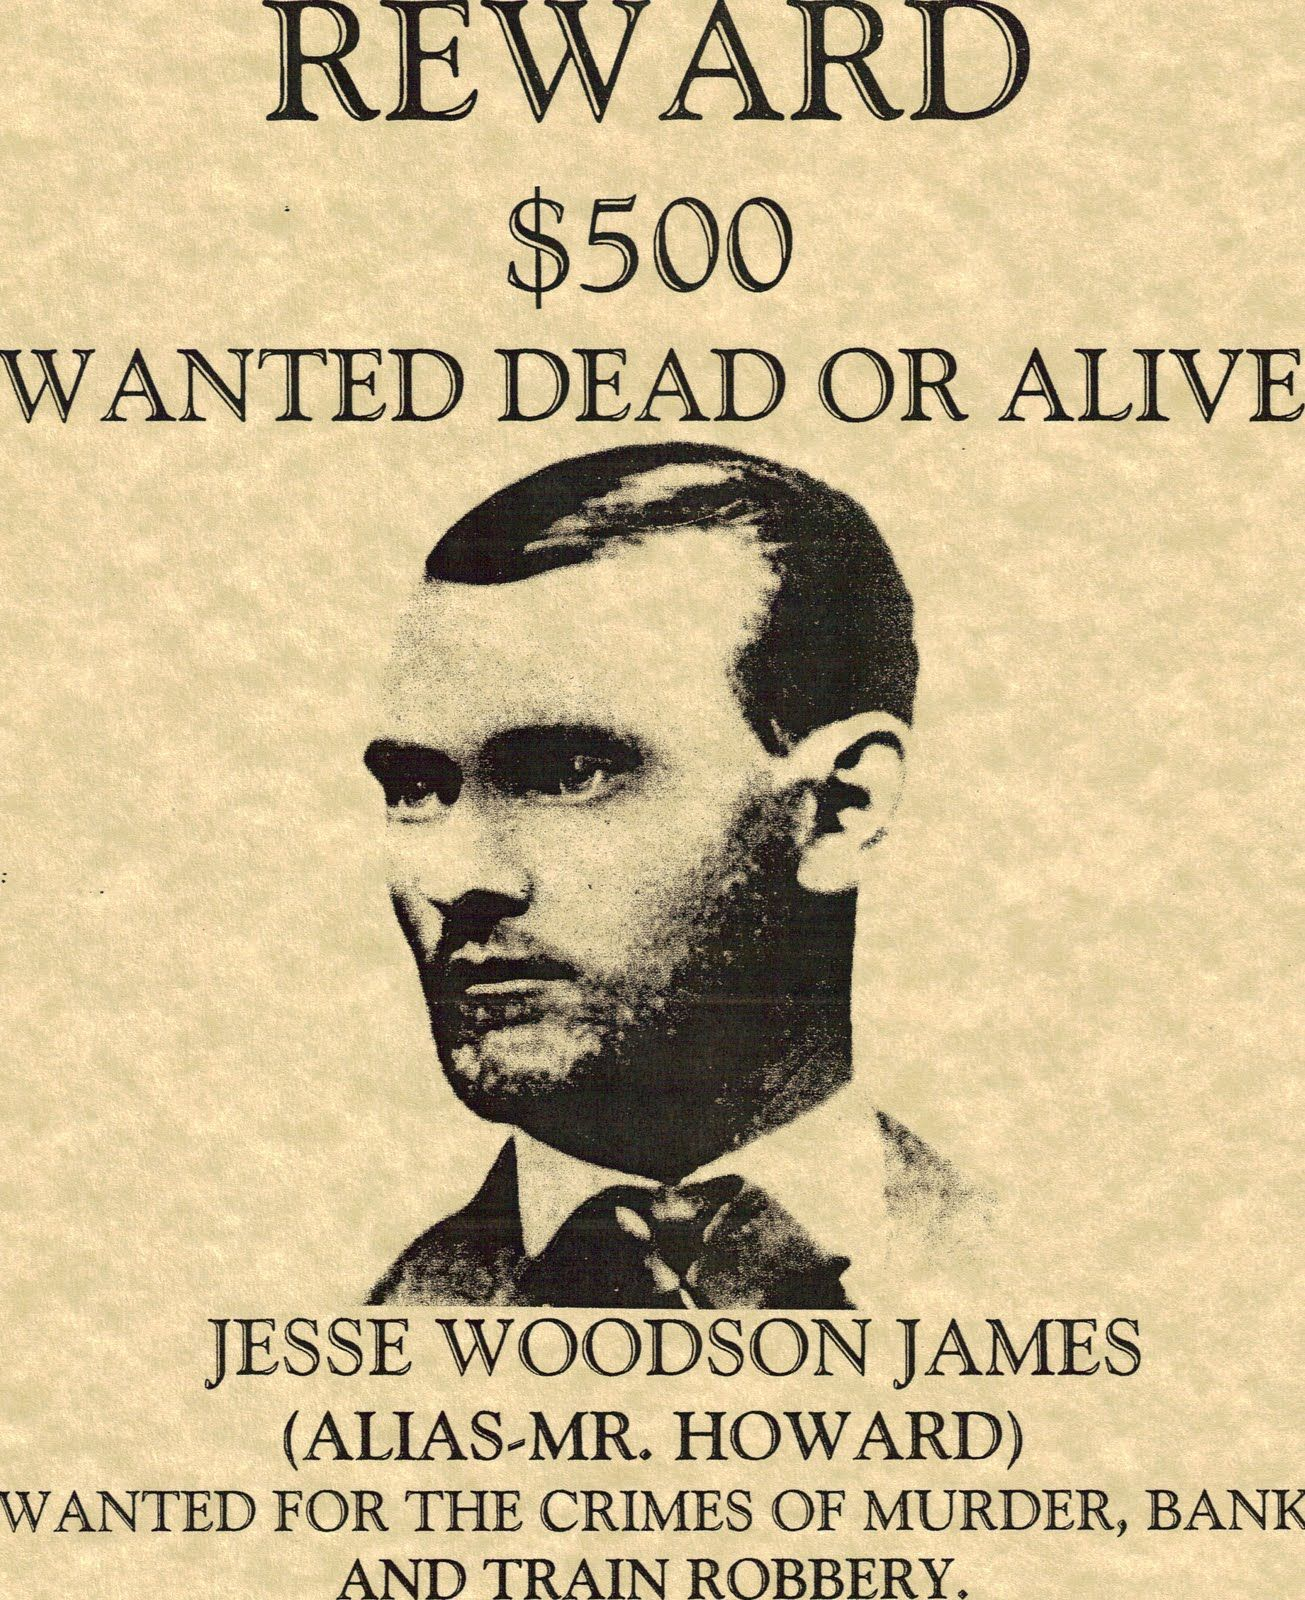 Jesse Woodson James was an American outlaw gang leader bank – Real Wanted Poster